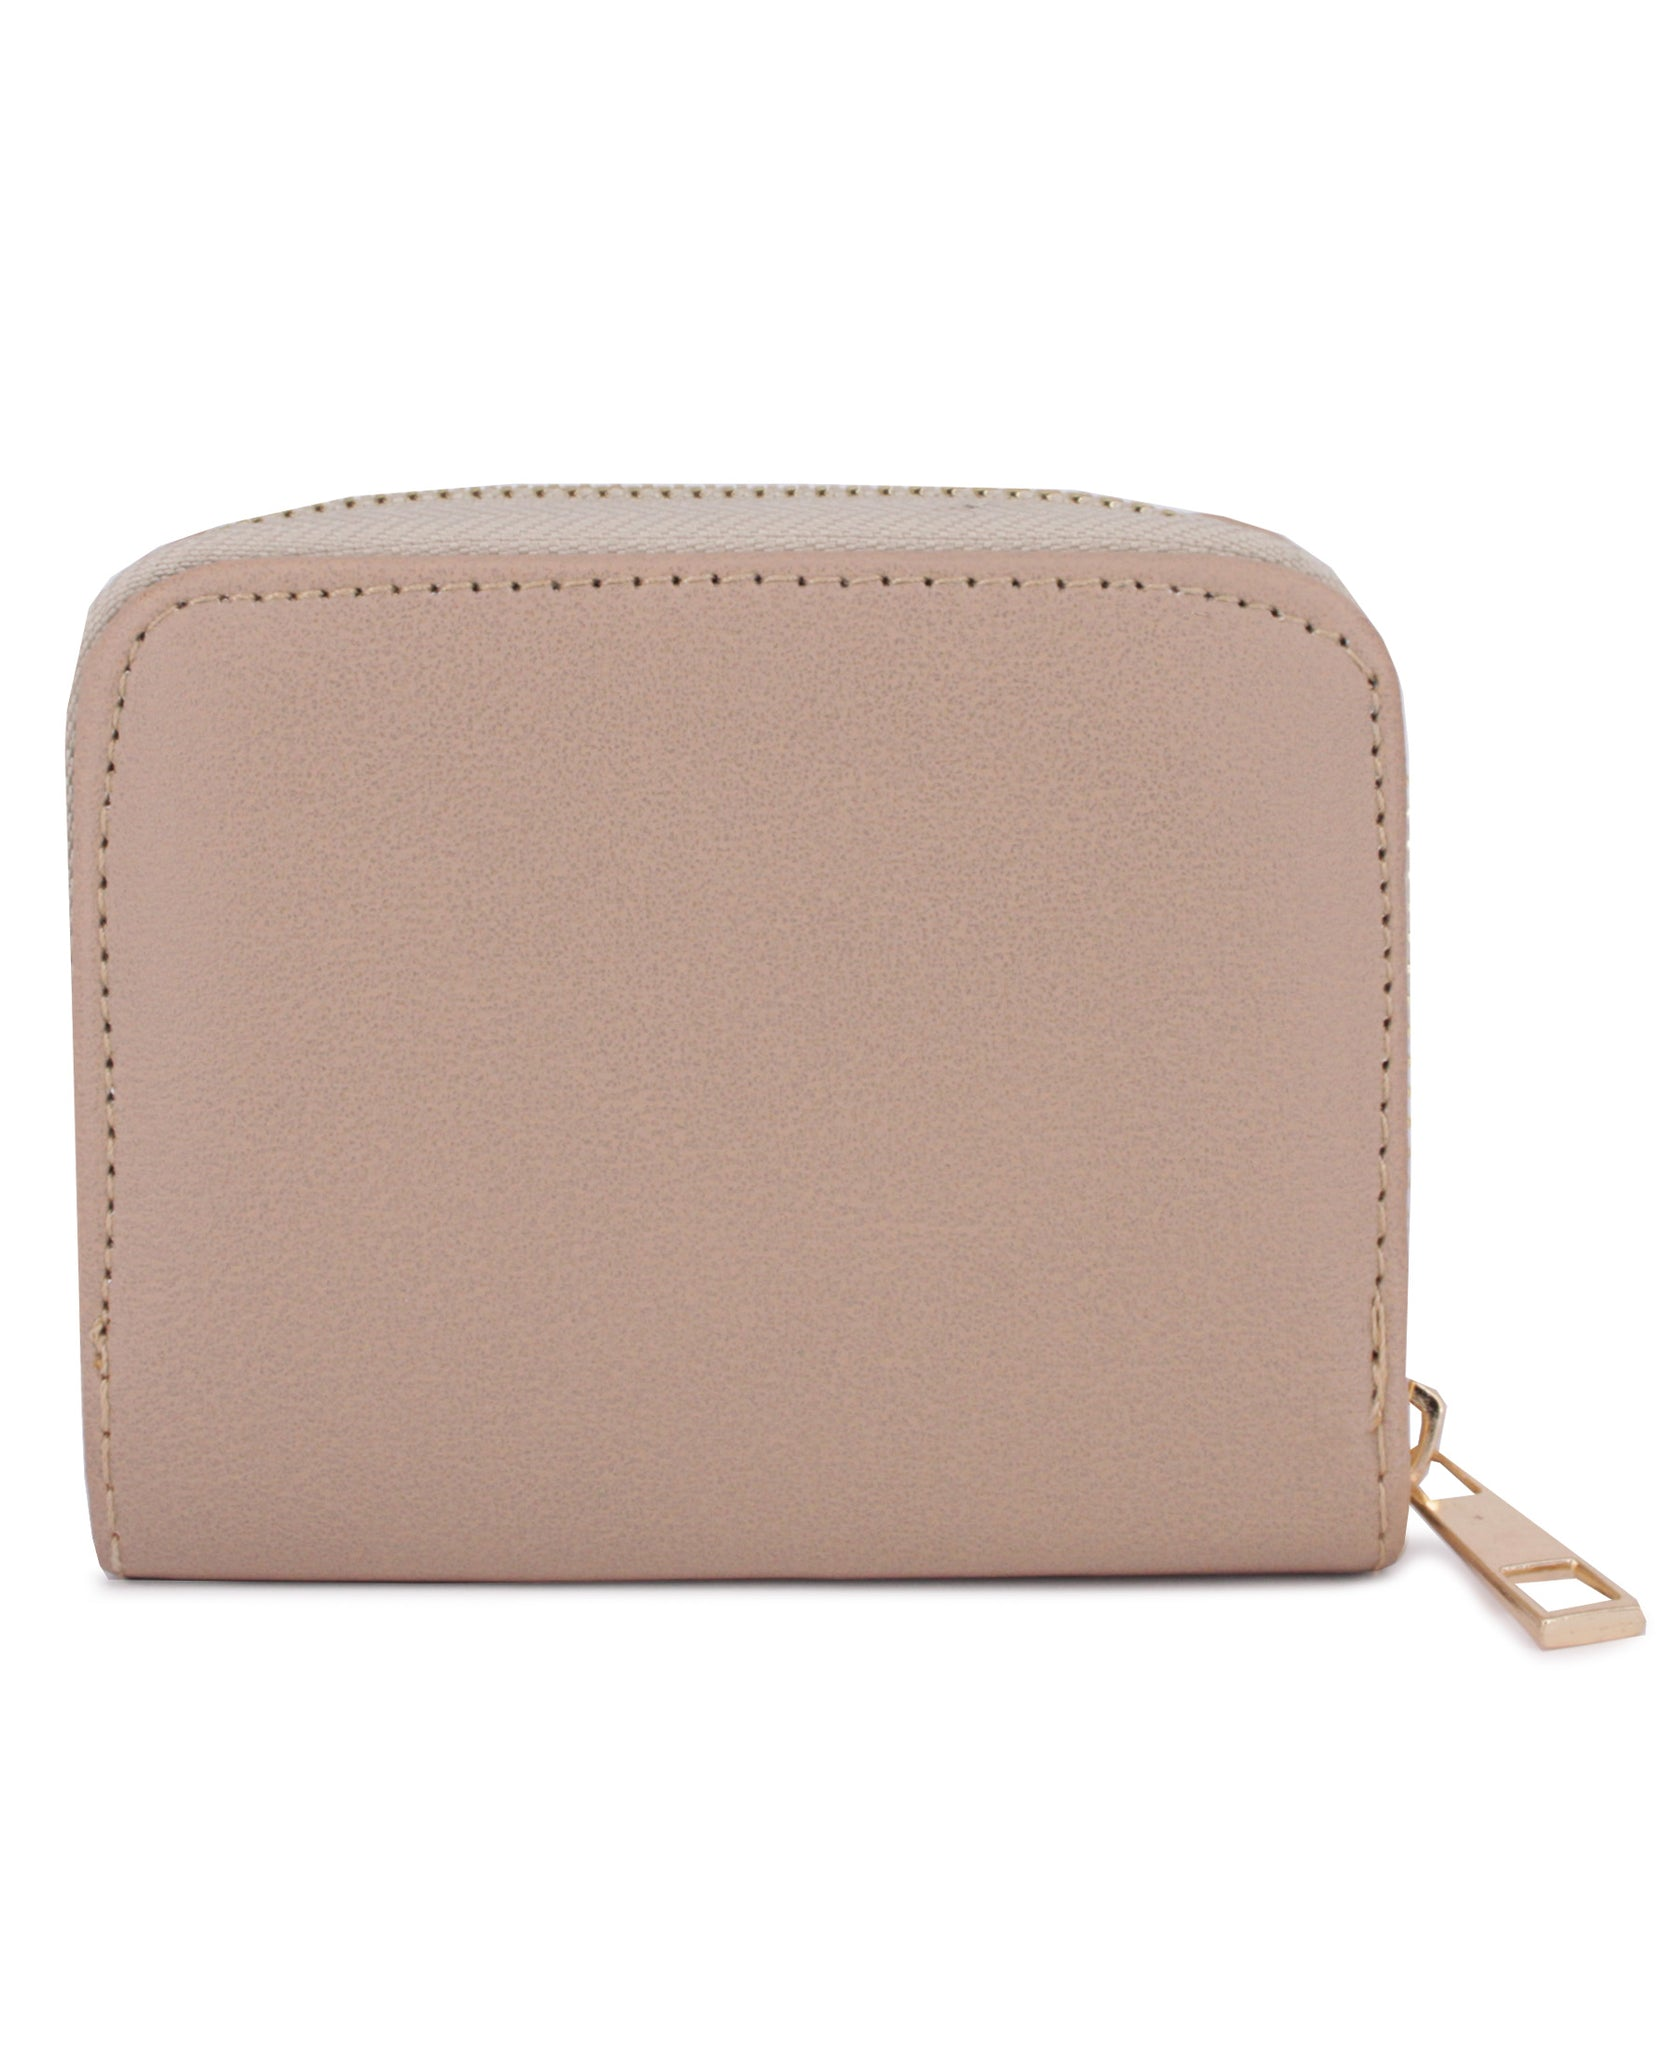 Zipper Wallet - Taupe